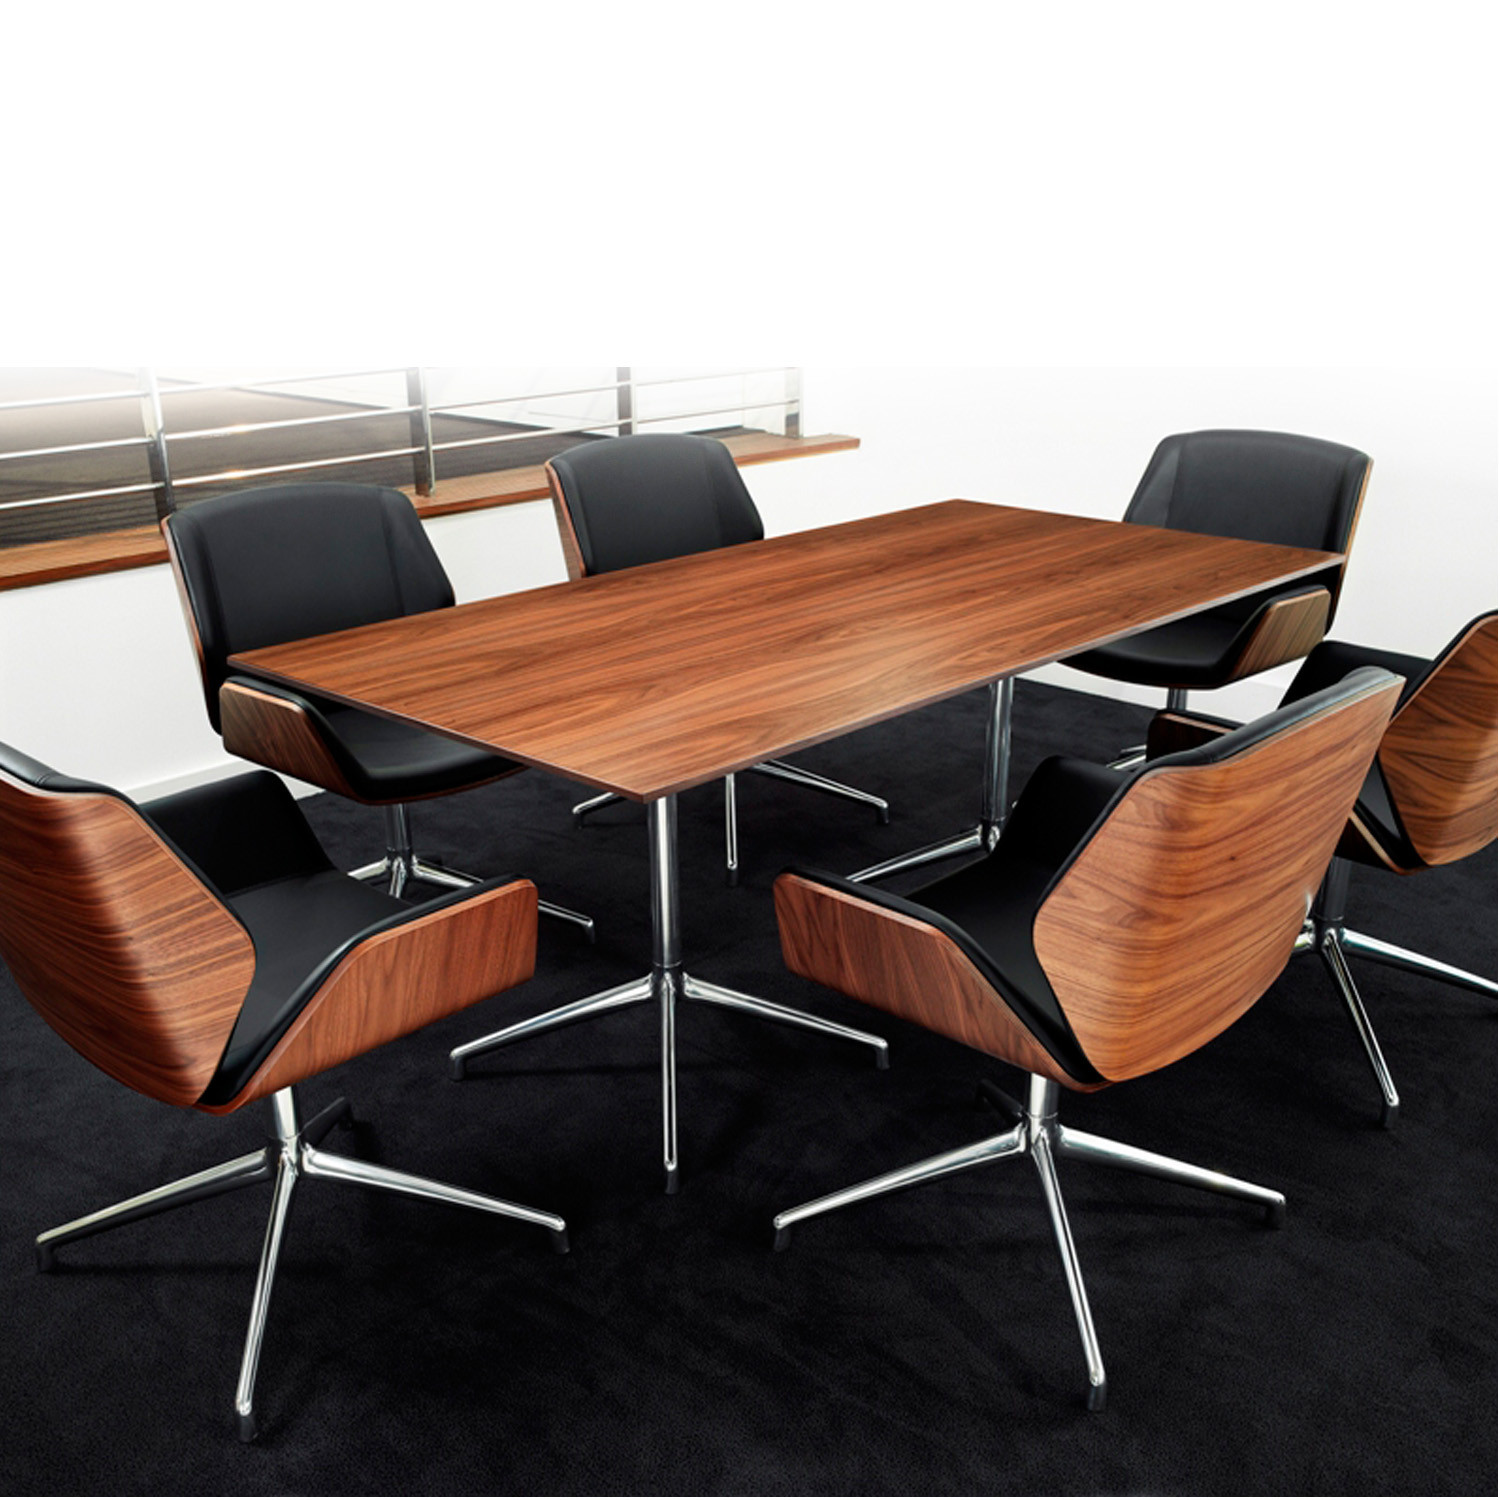 Kruze Meeting Chairs from Boss Design